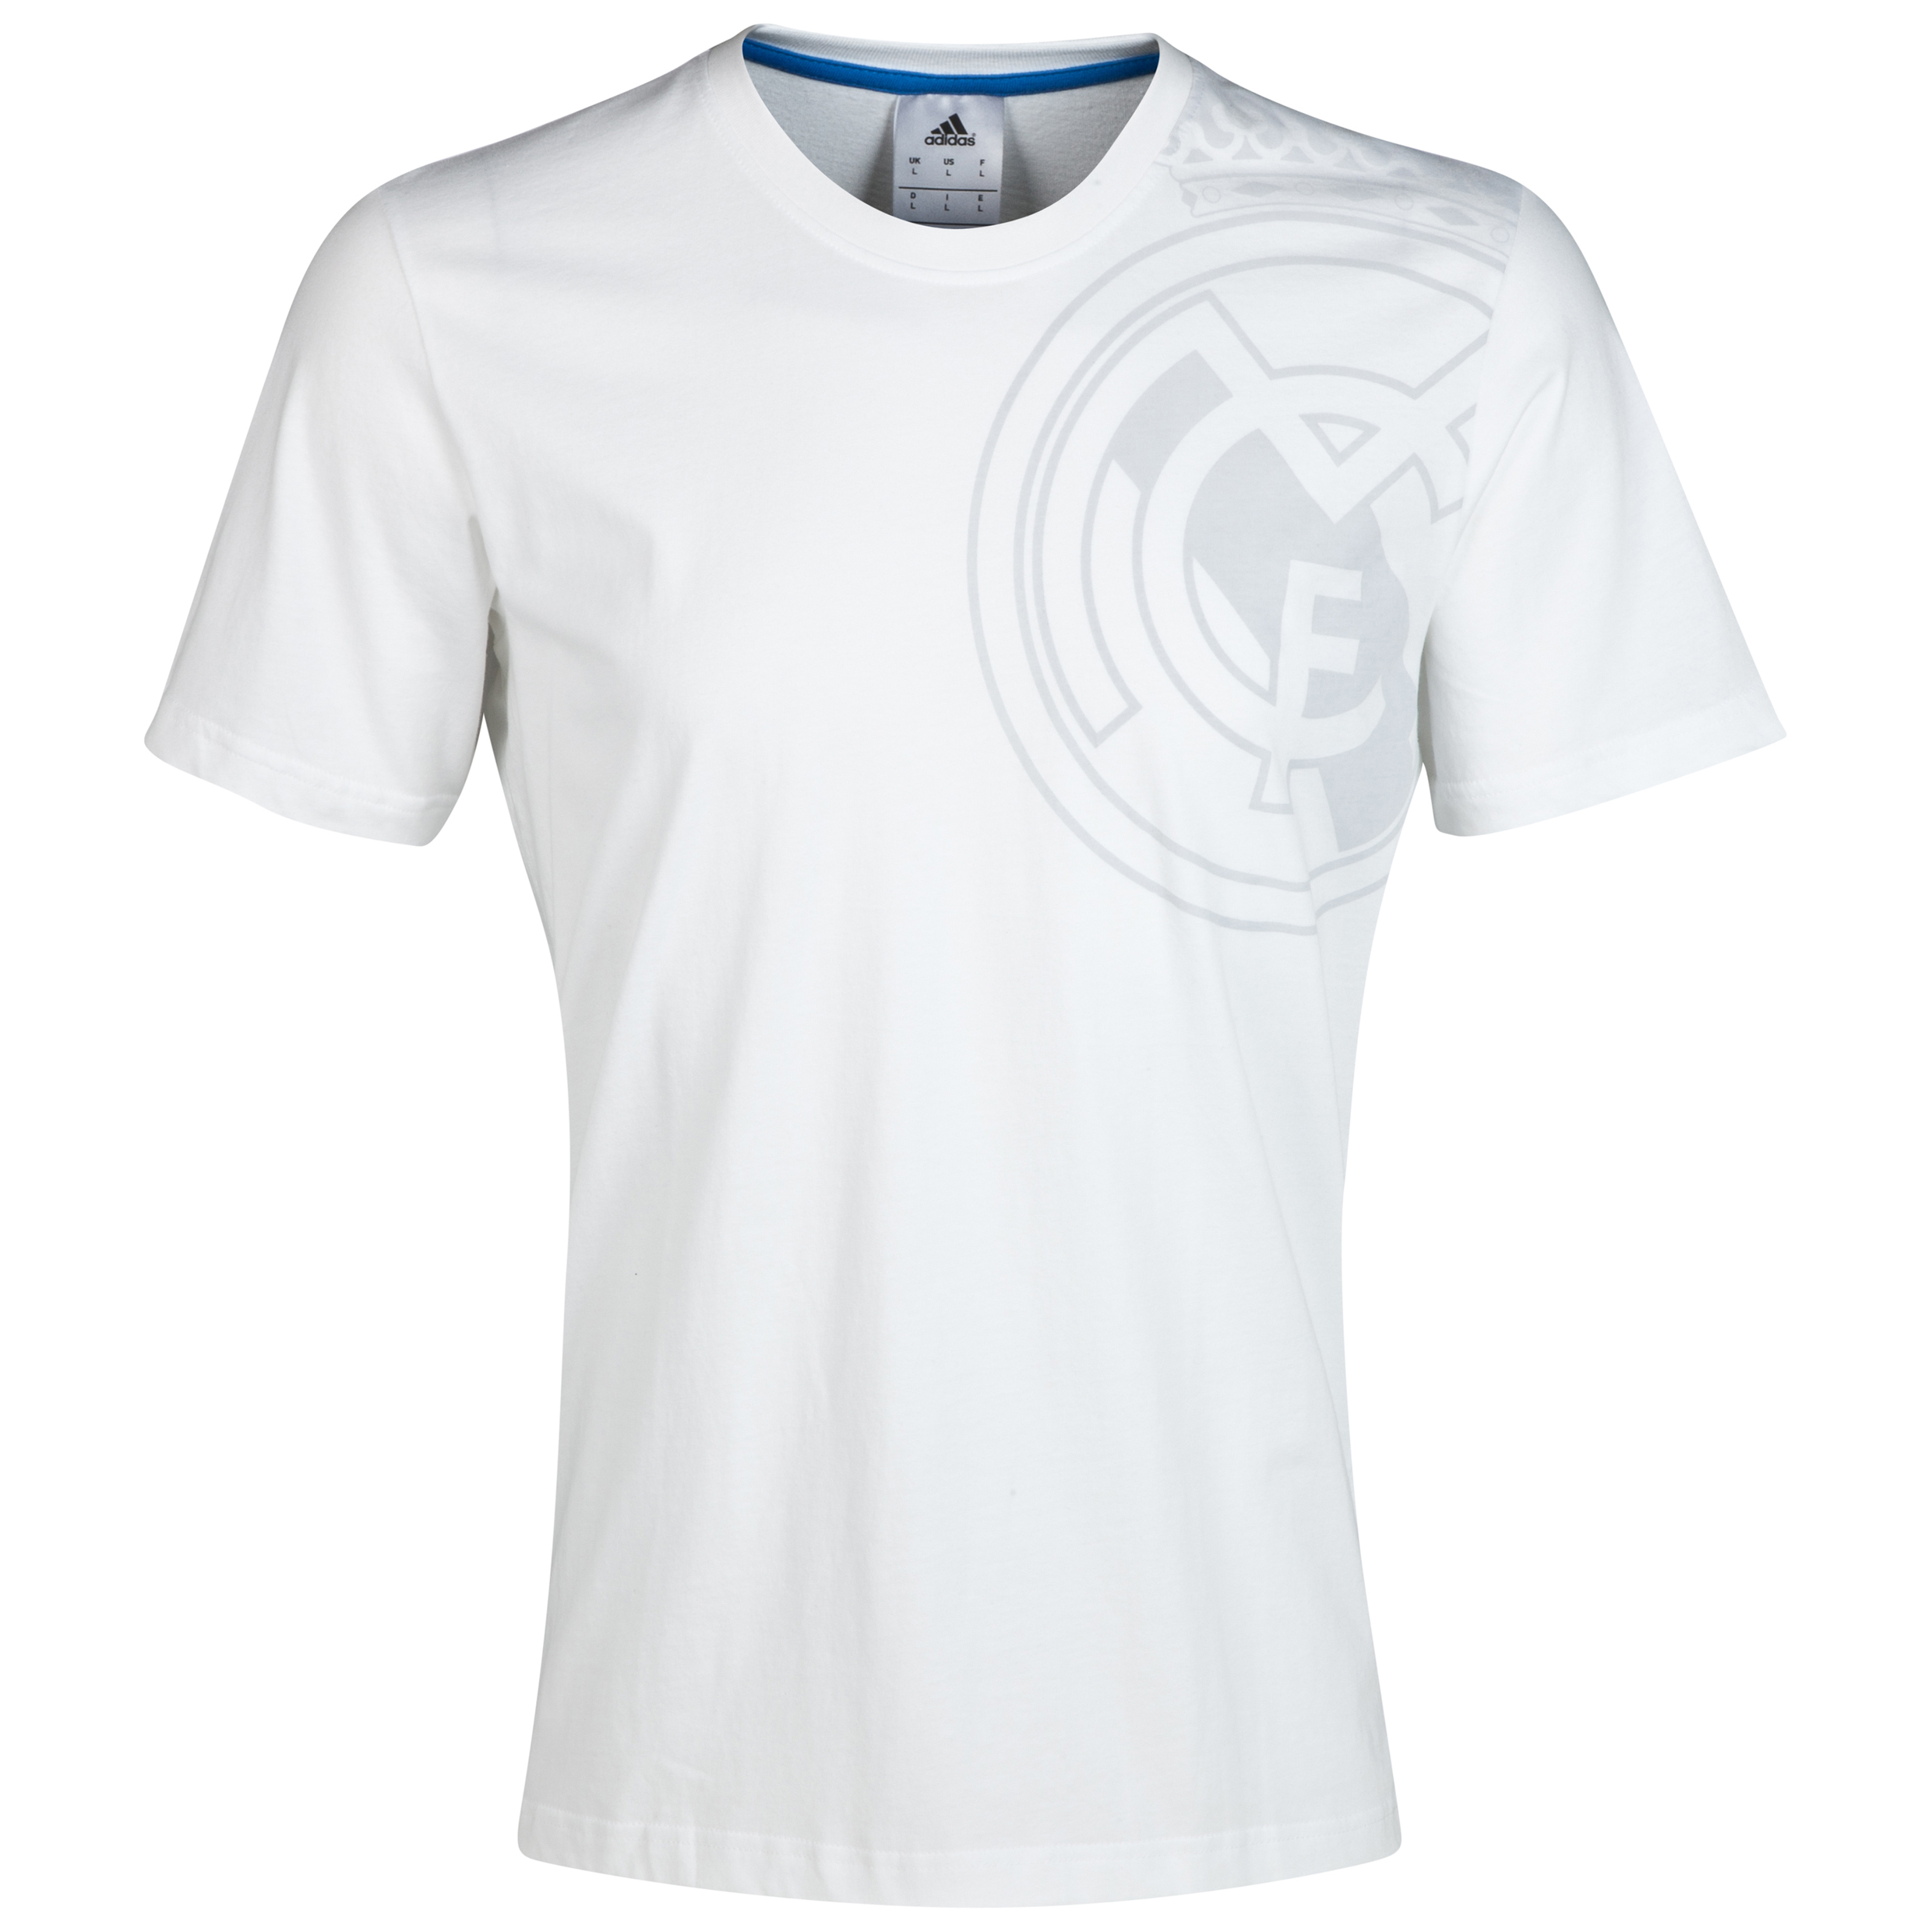 Real Madrid Graphic T-Shirt White